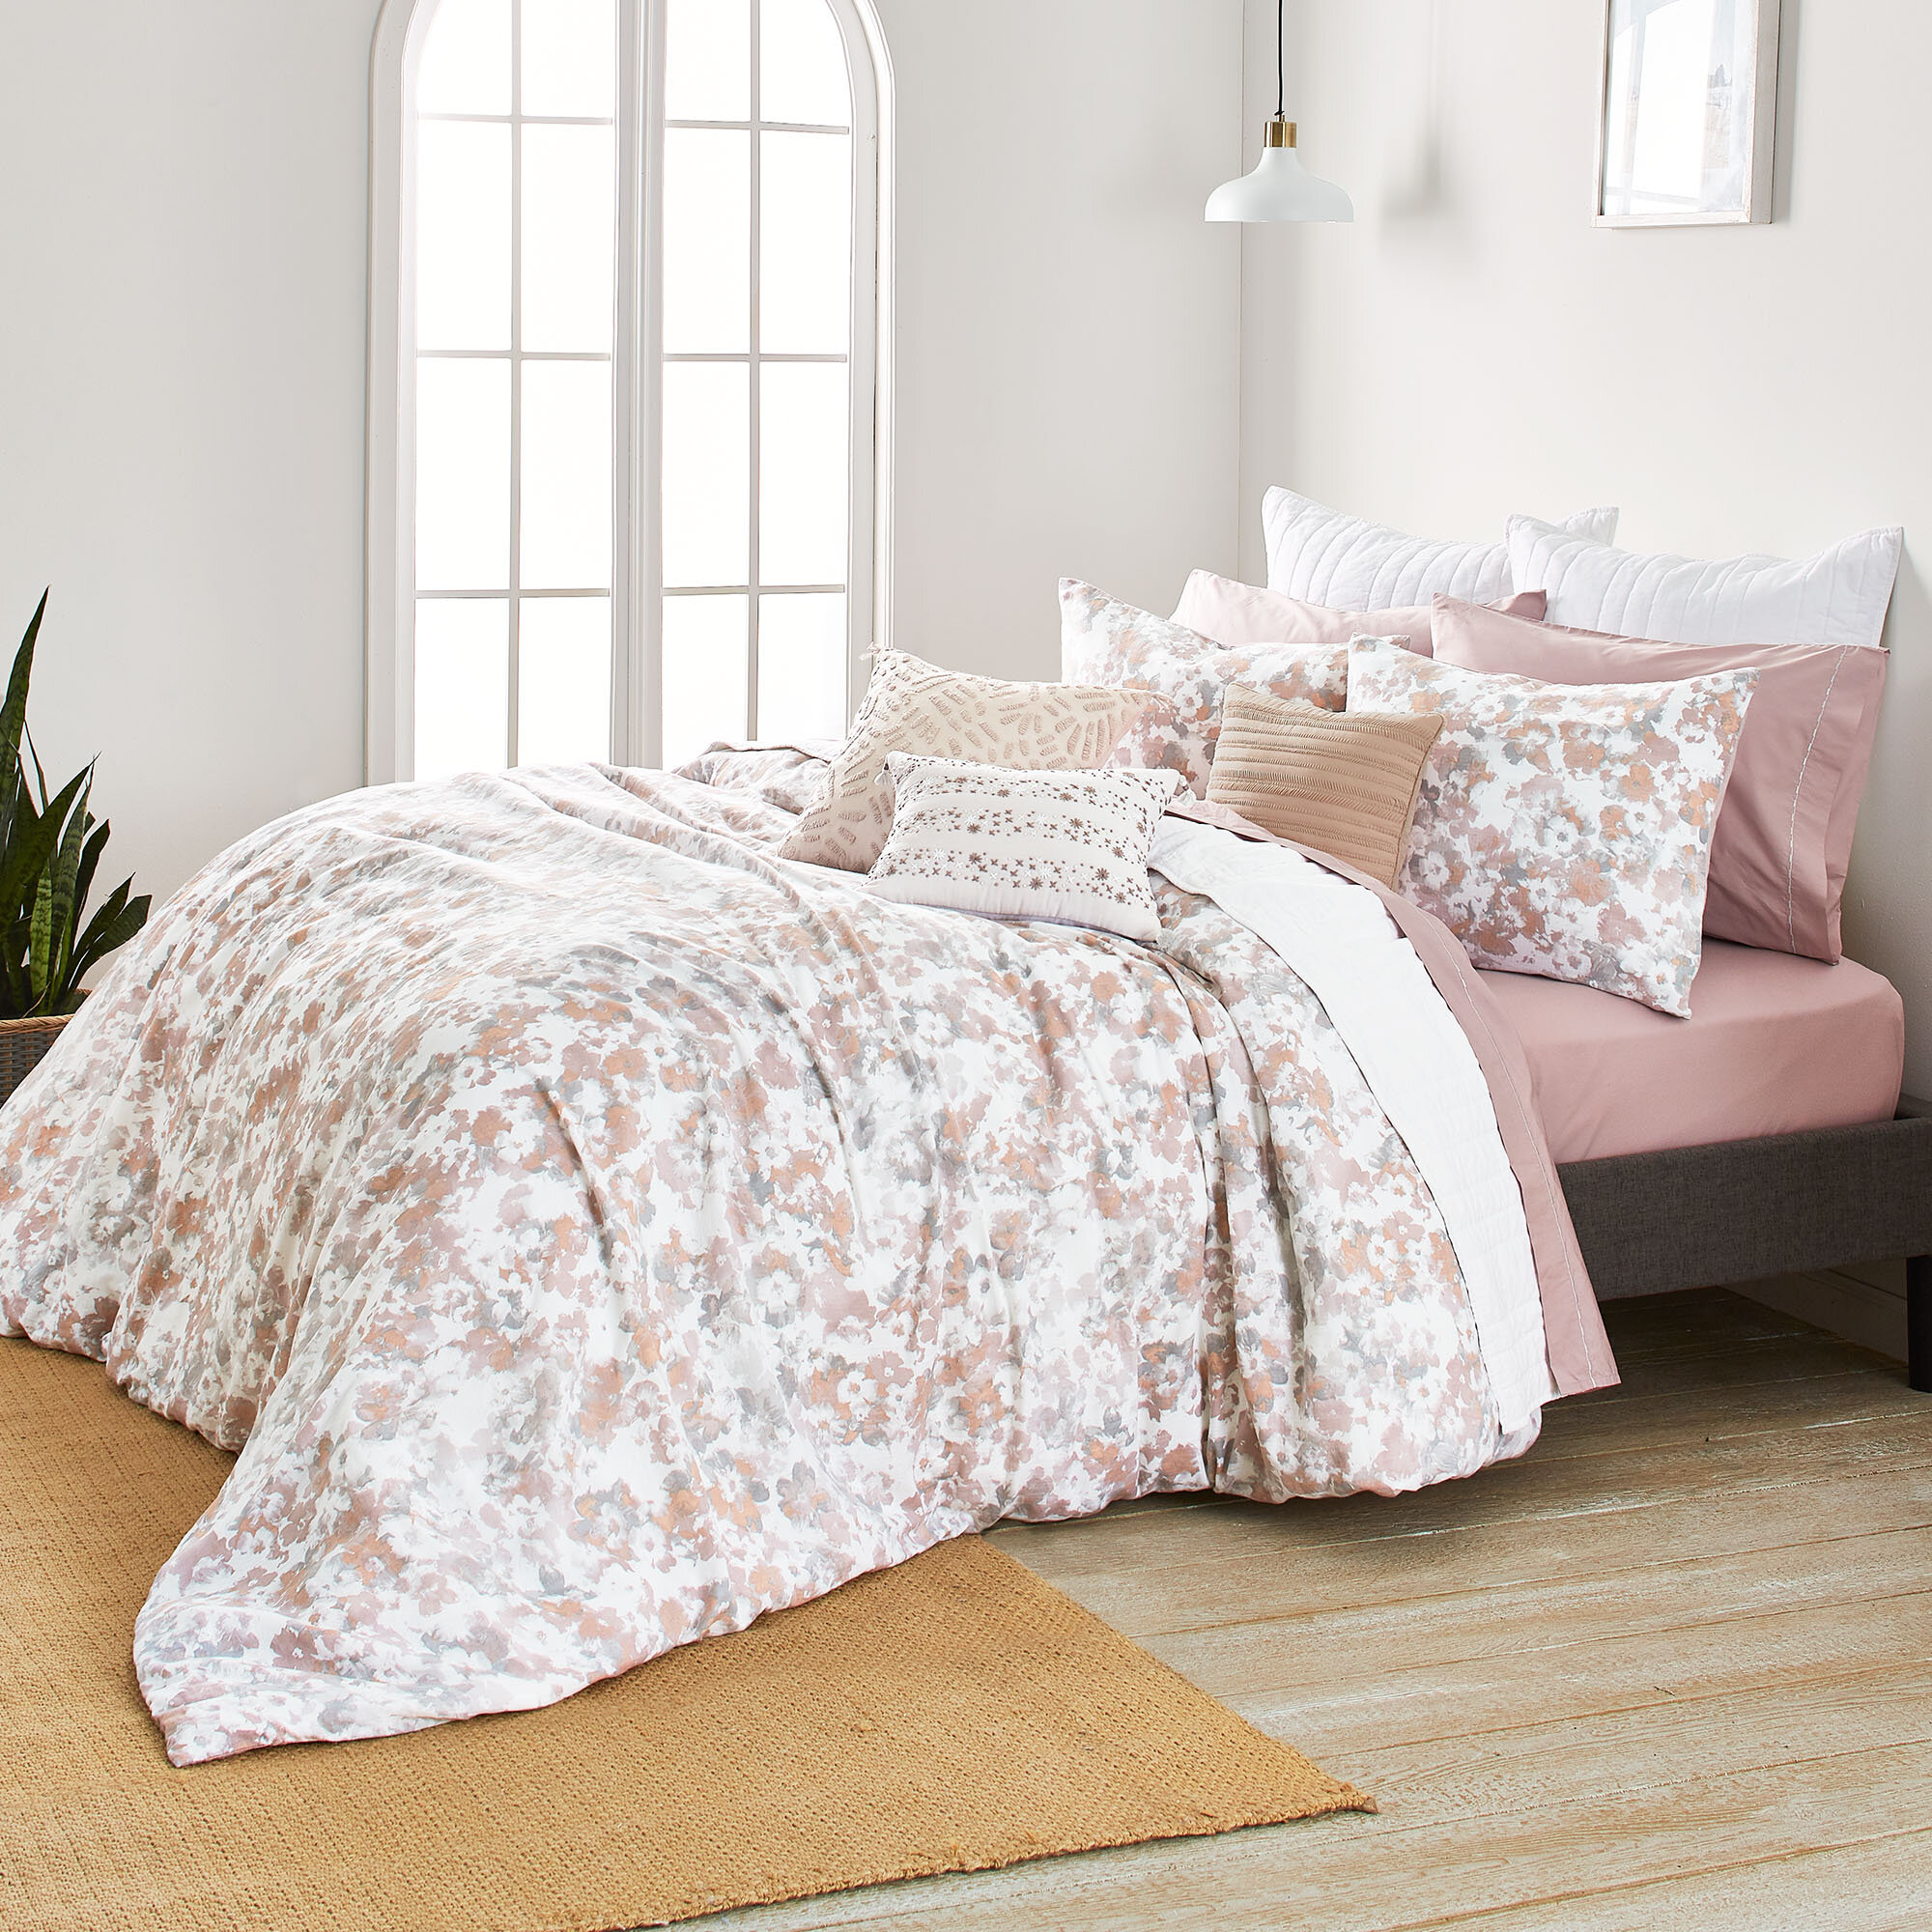 Splendid Home Bedding You Ll Love In 2021 Wayfair